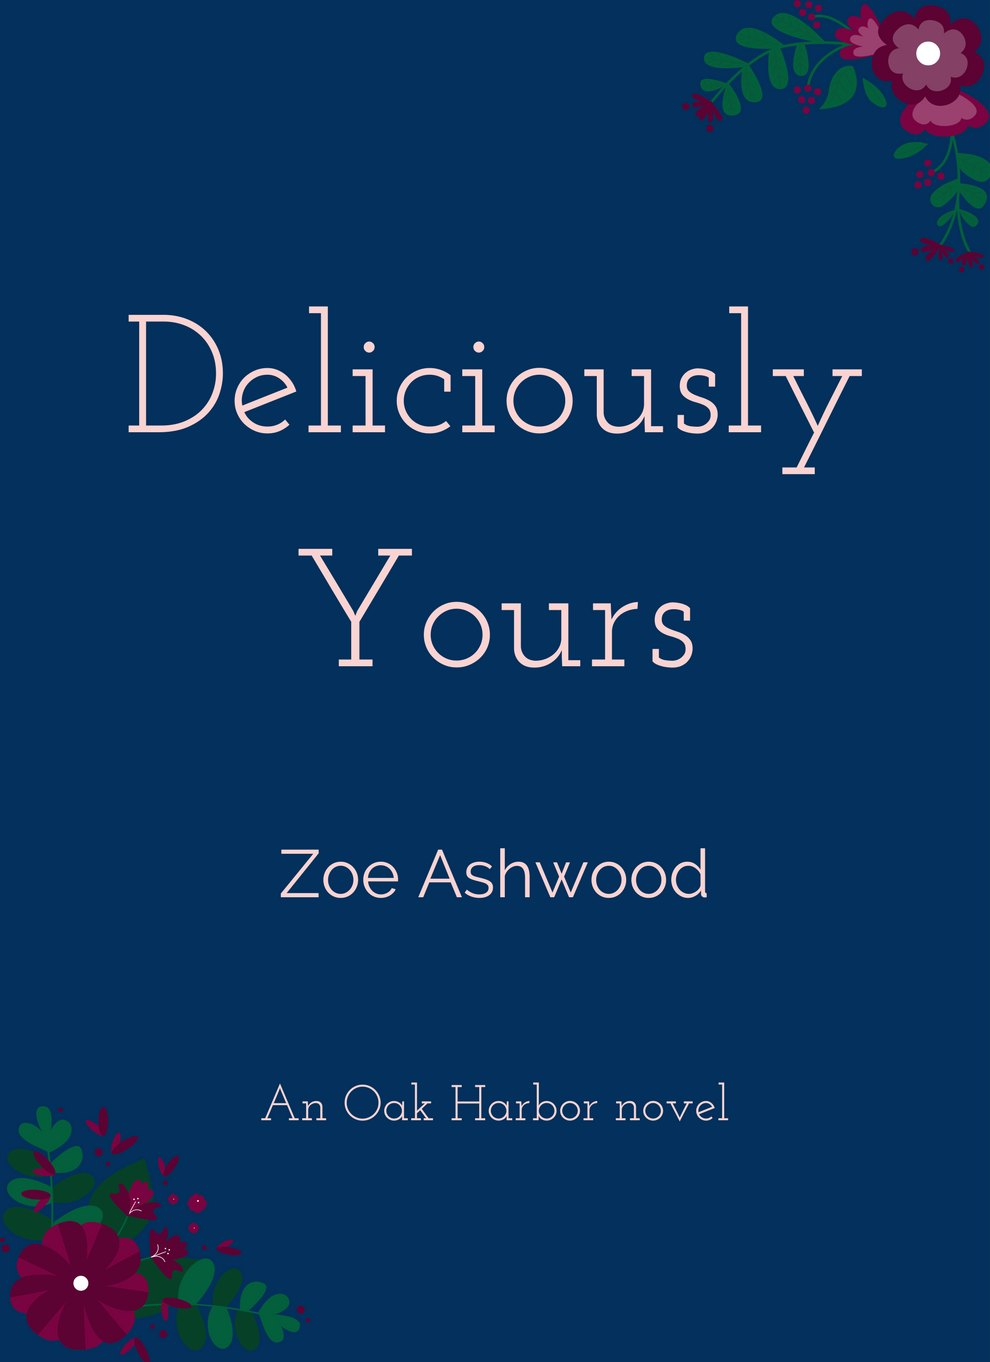 Contemporary romance Deliciously Yours (an Oak Harbor novel) by Zoe Ashwood